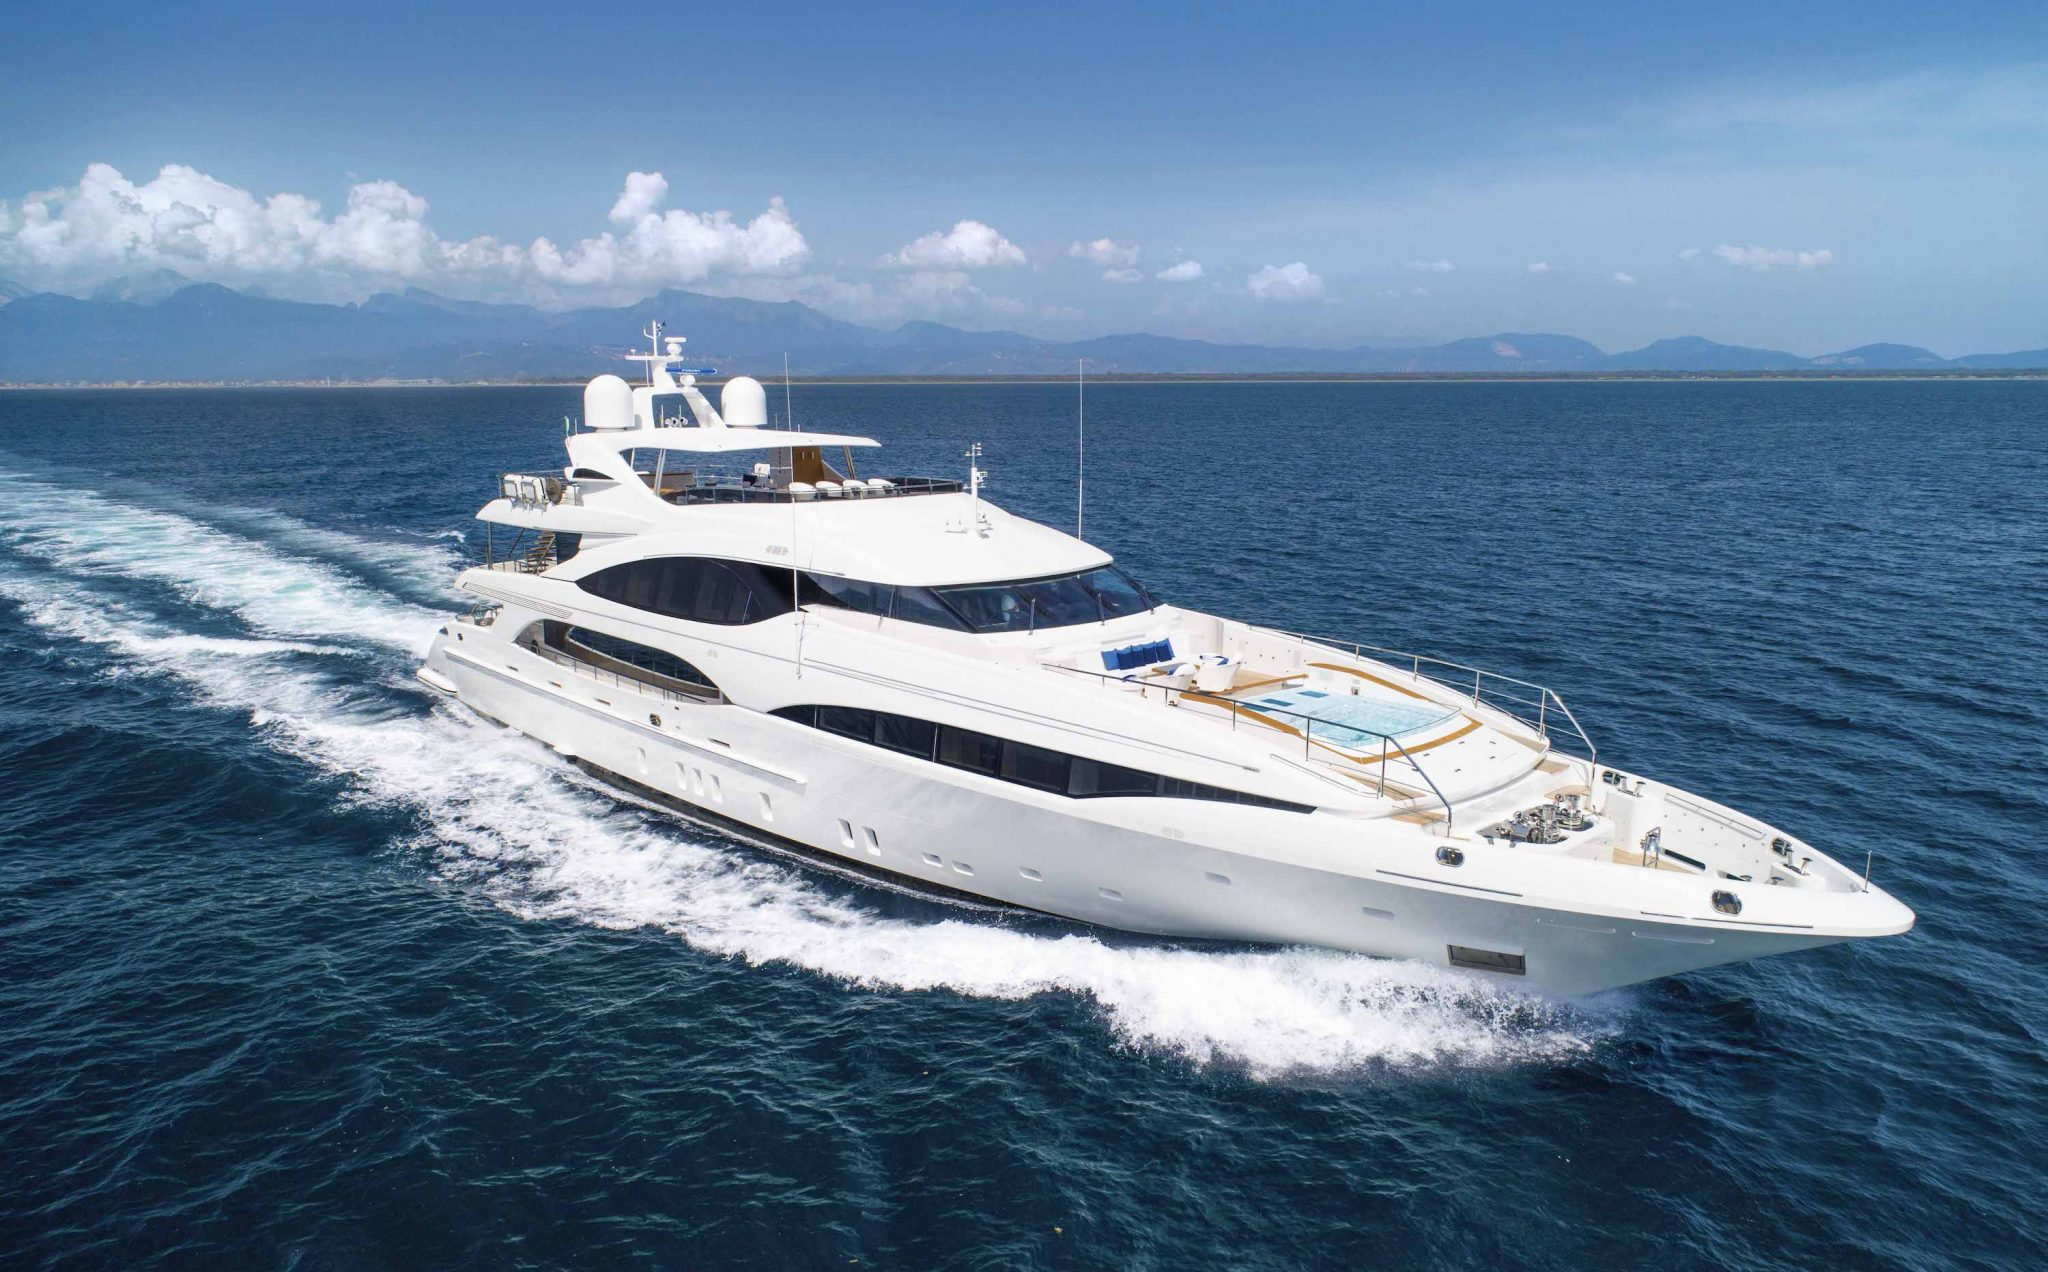 Another €2.5M Price Reduction on Superyacht Q95